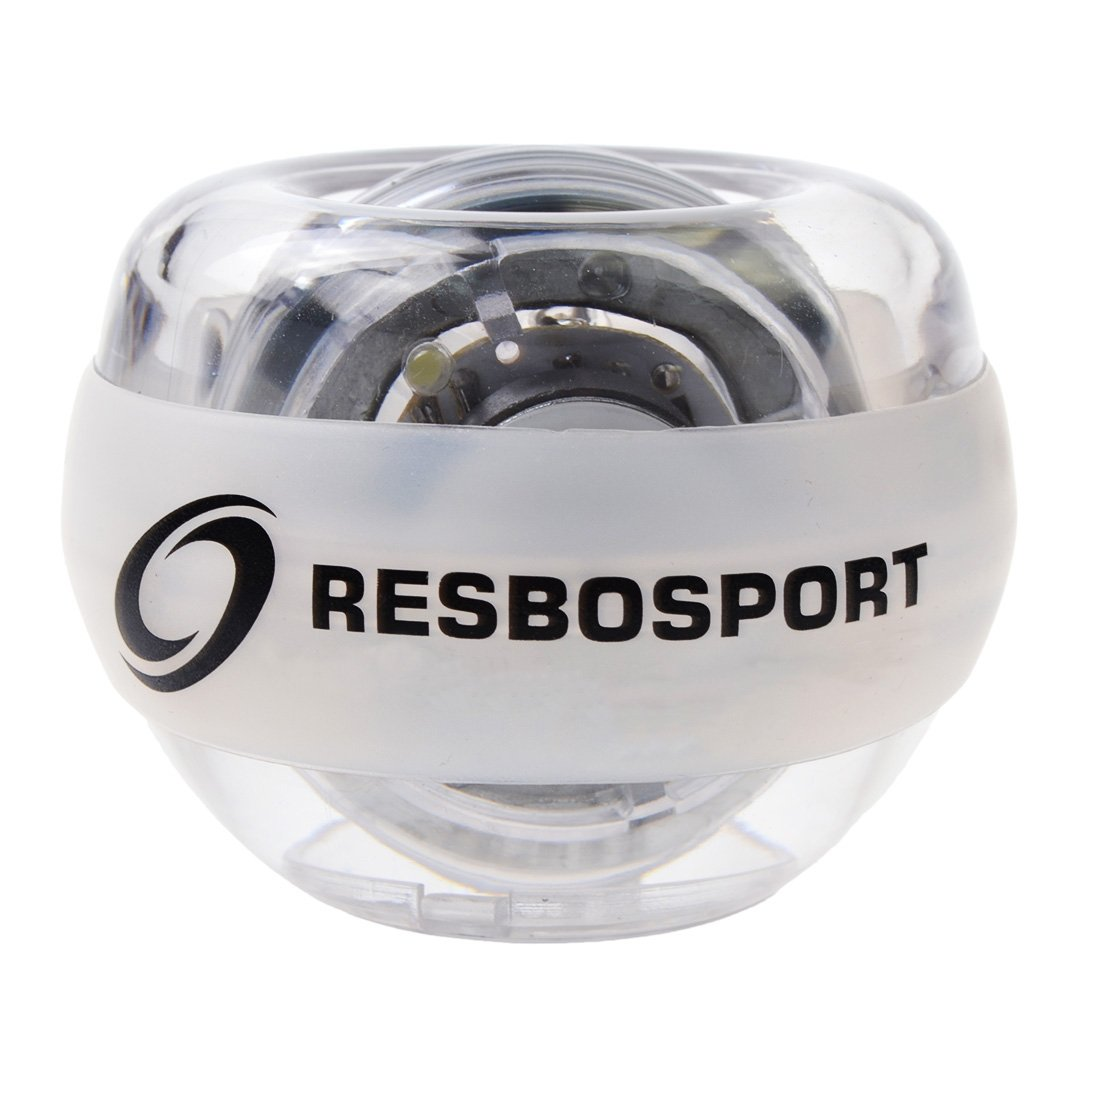 RESBO Wrist Trainer Ball Exerciser Hand Spinner Gyroscopic Ball Metal Type Gyro Ball with LED Light by RESBO SPORT (Image #9)